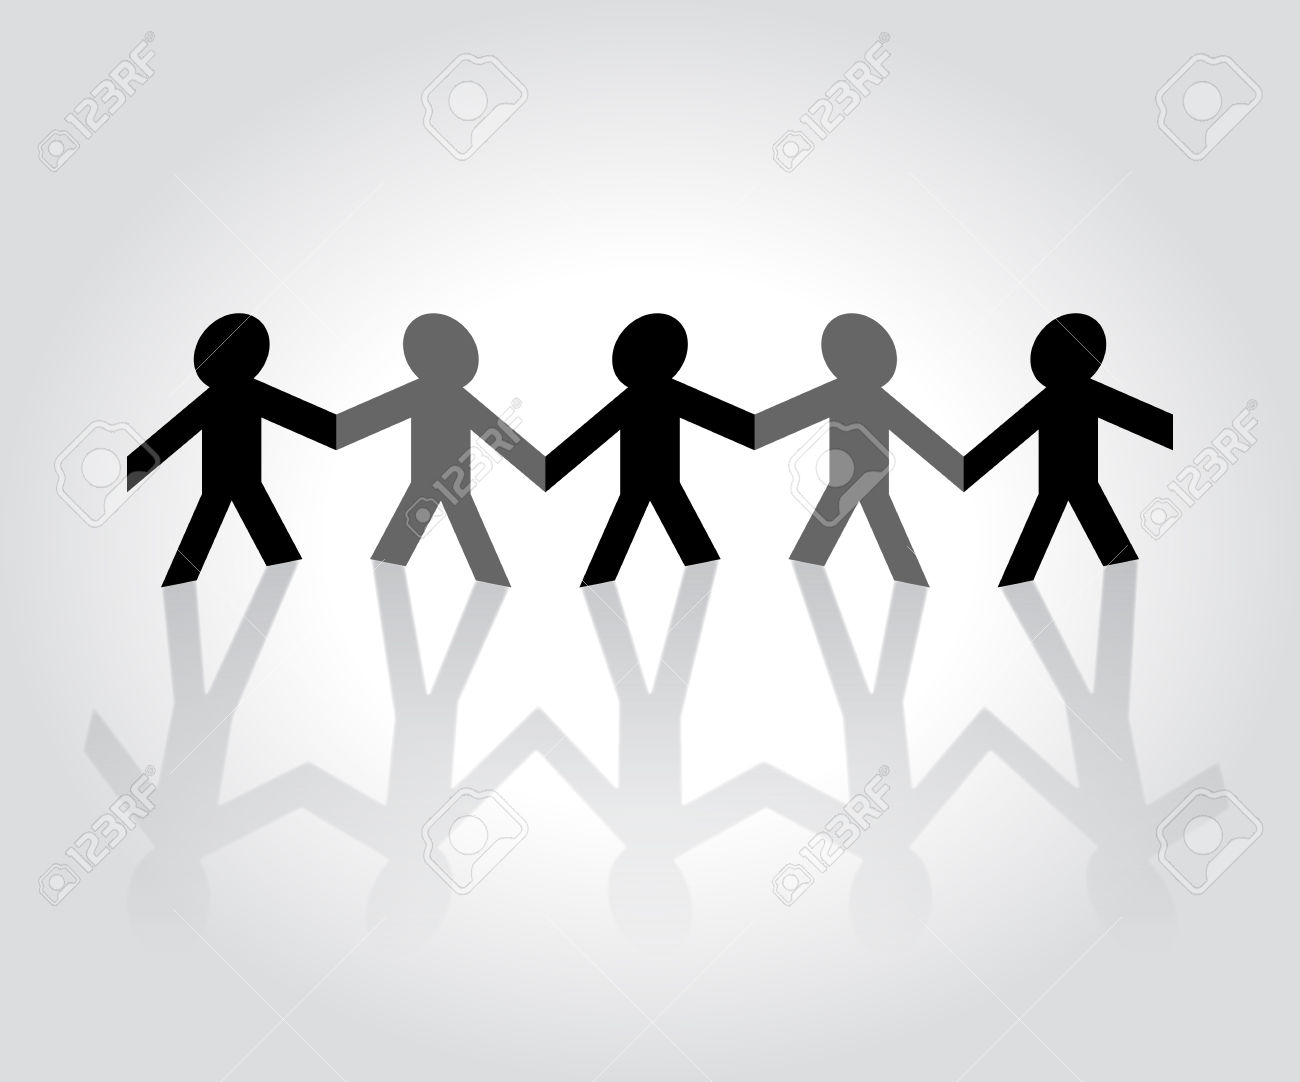 Black People Holding Hand Clipart.